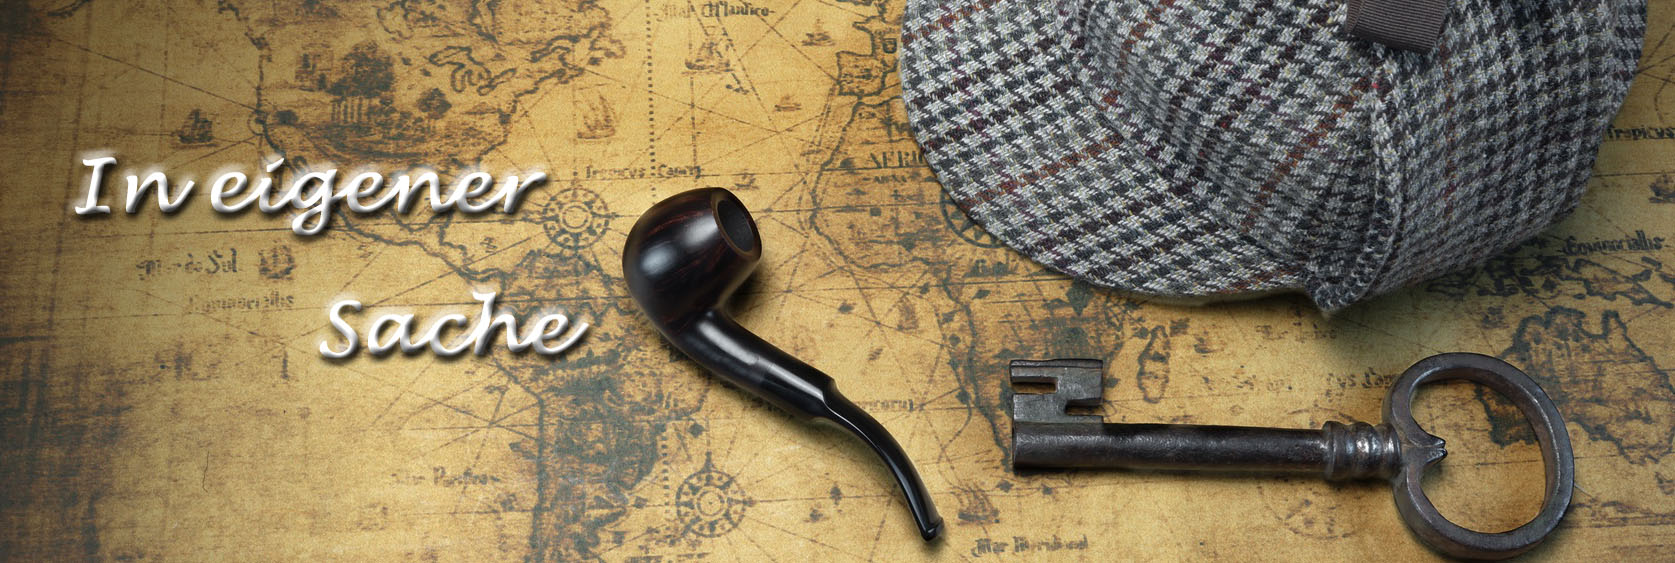 Deerstalker Sherlock Hat, Vintage Key, Smoking Pipe On Old Map.